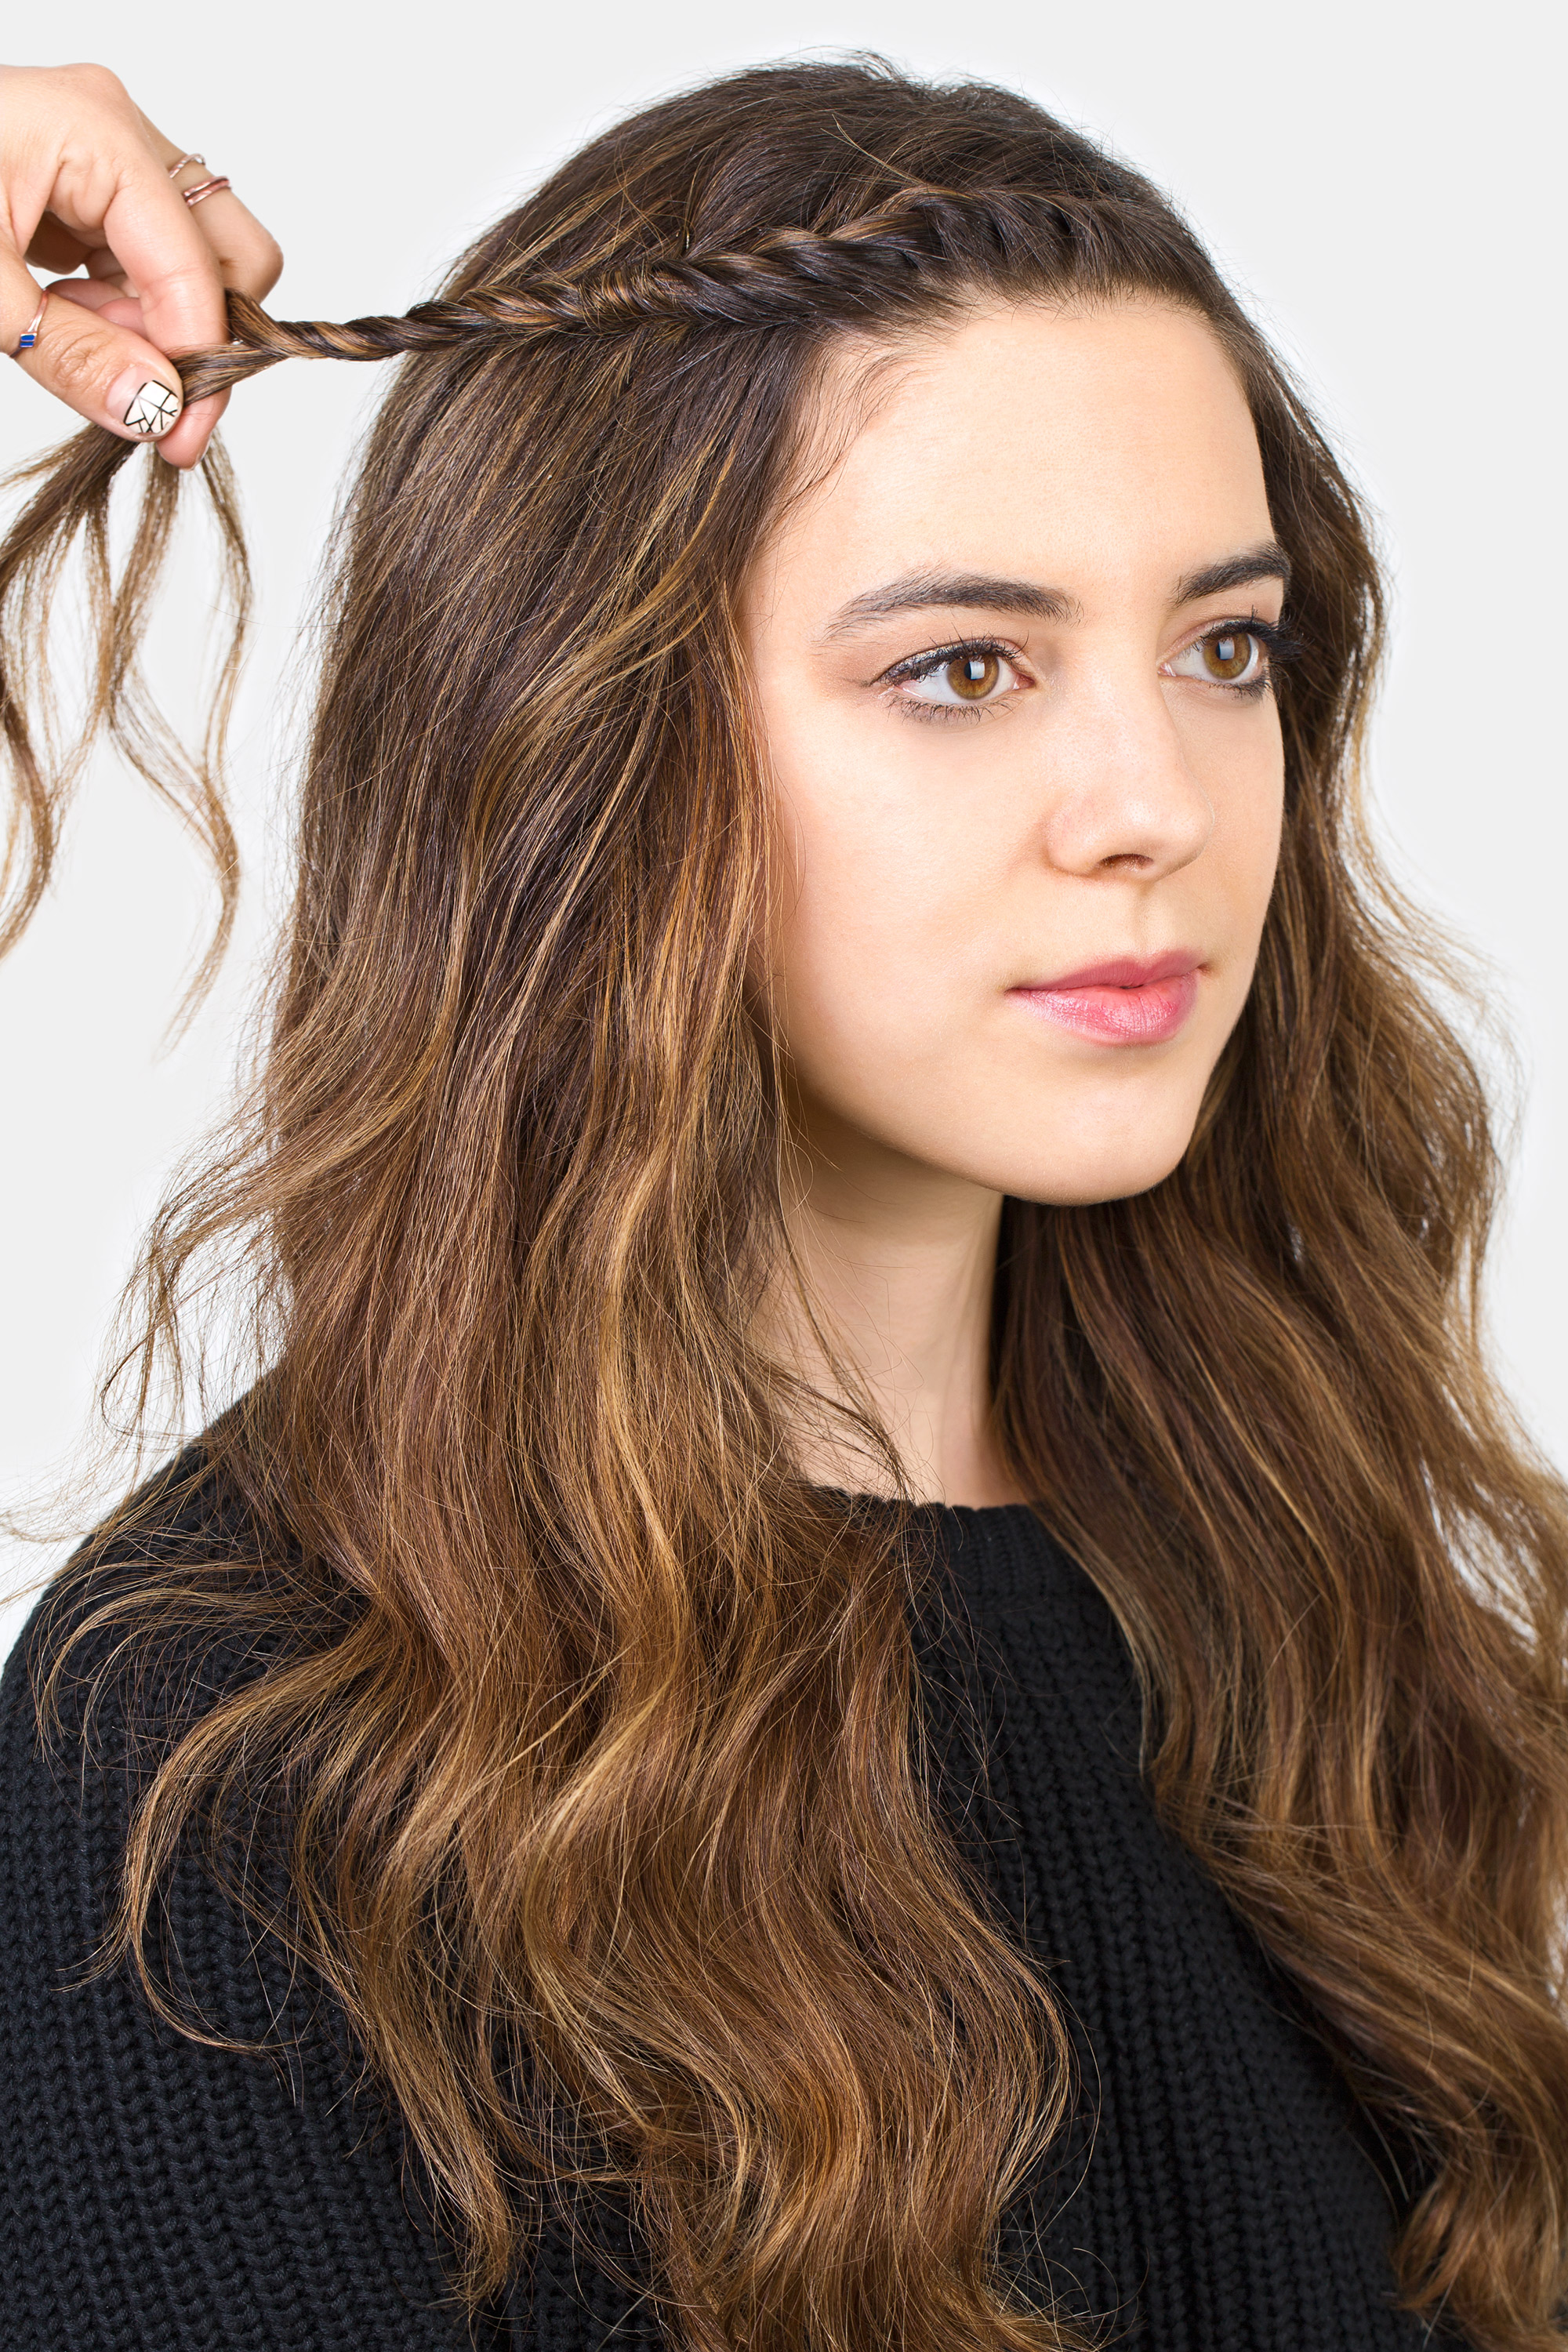 Fabulous How To Style Bangs 5 Hairstyles To Keep Your Bangs Out Of Your Face Short Hairstyles Gunalazisus